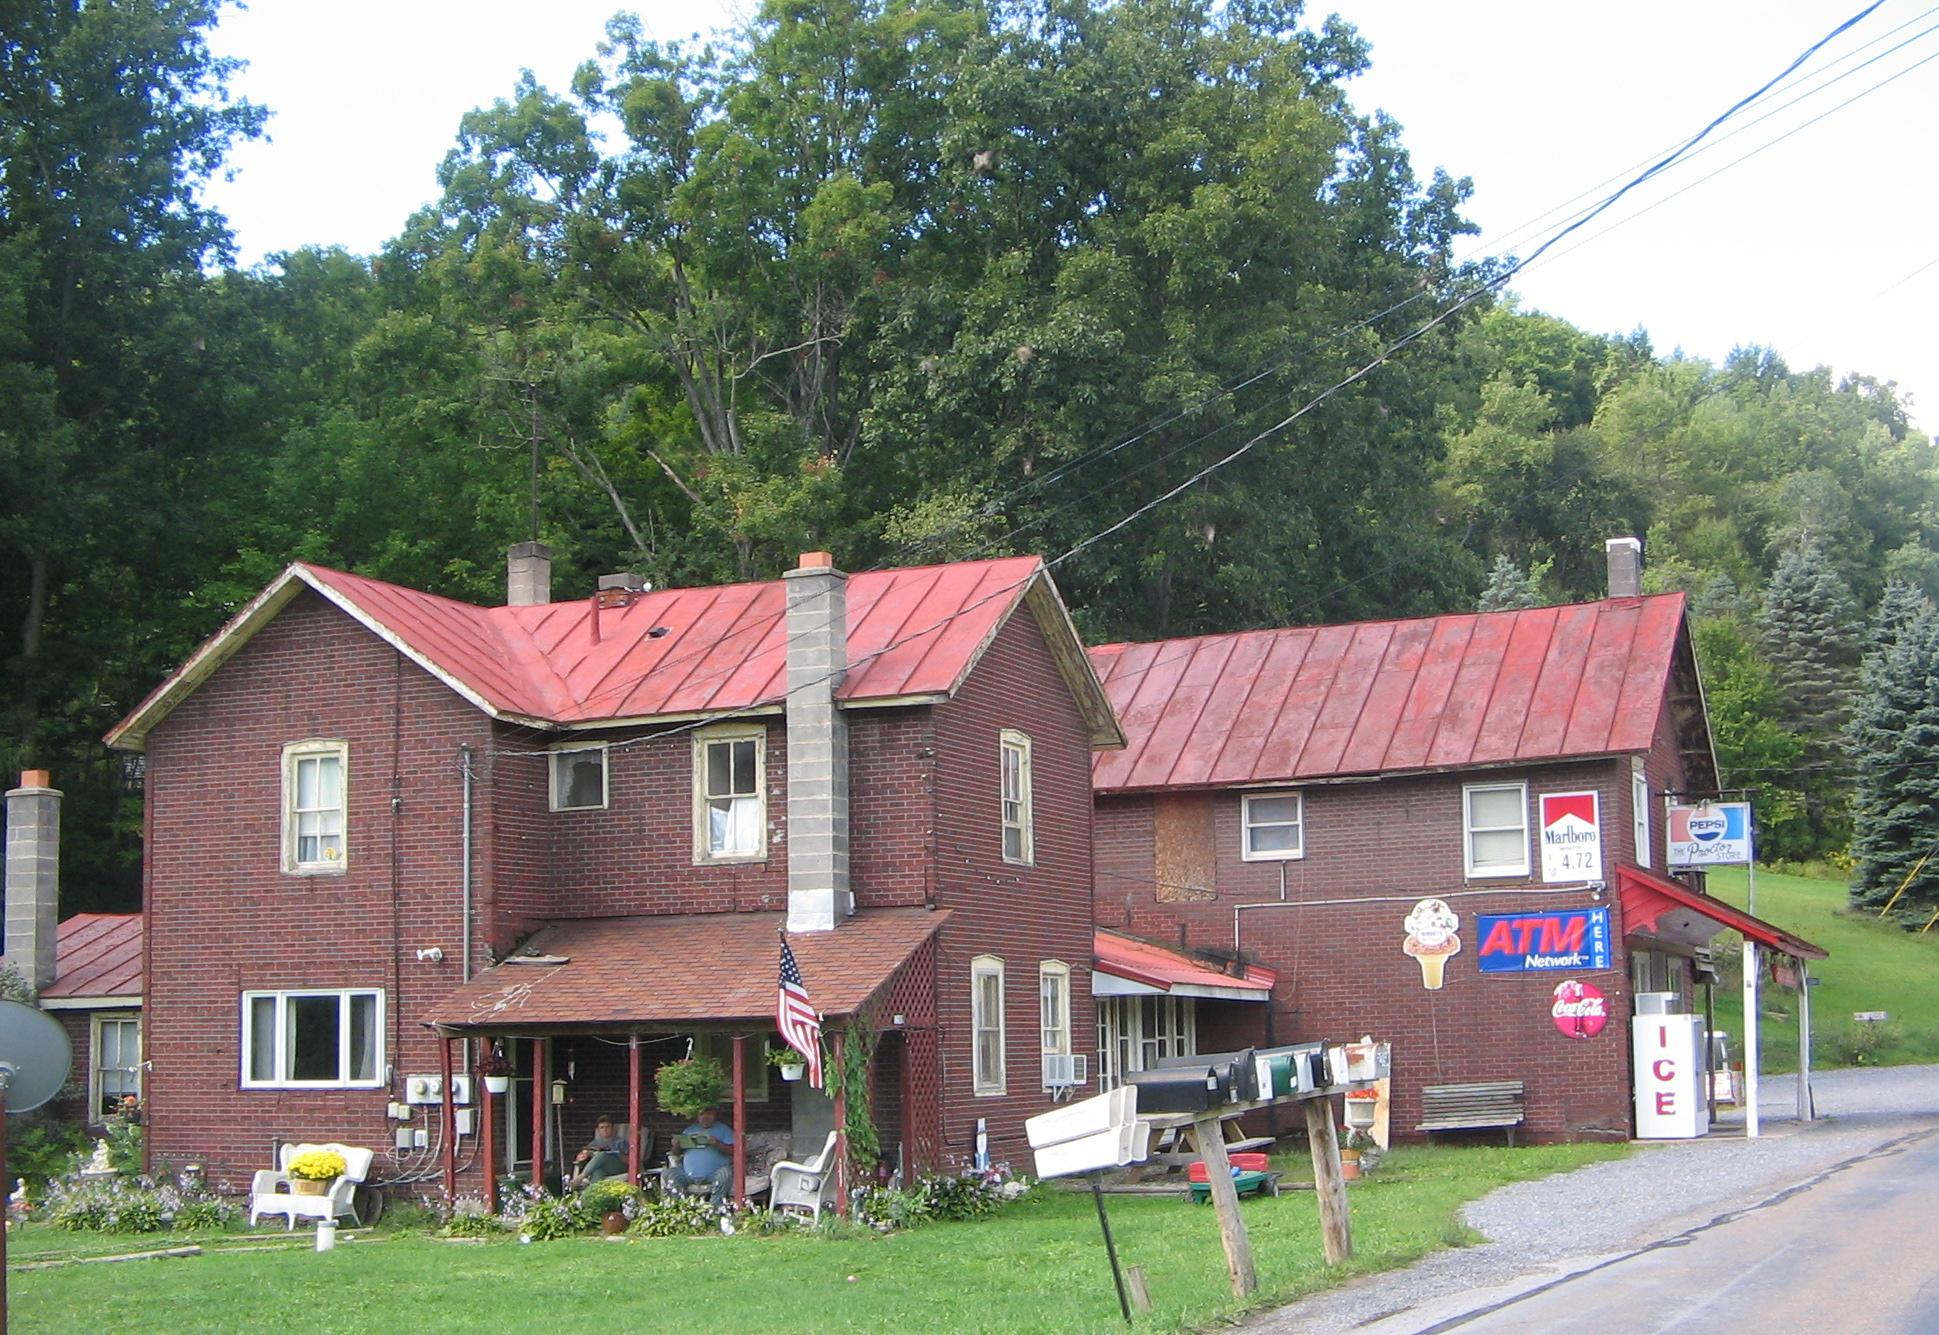 Plunketts Creek Township, Lycoming County, Pennsylvania